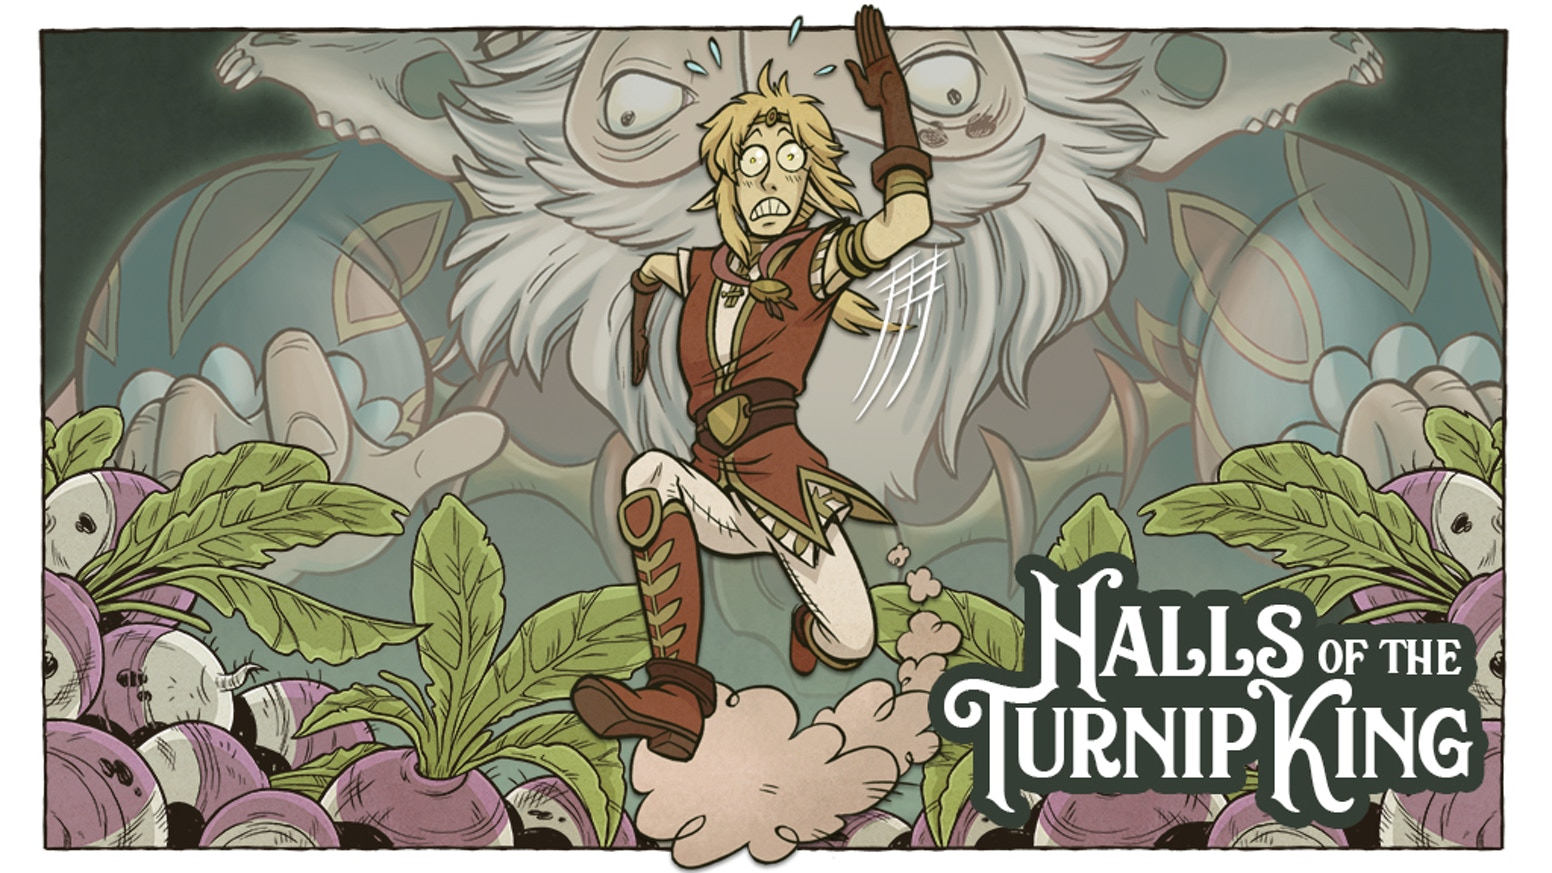 Prince Tatian Elfiore embarks on a royal mission to the Dwarven mines where all hope for peace hinges on one sacred vegetable!